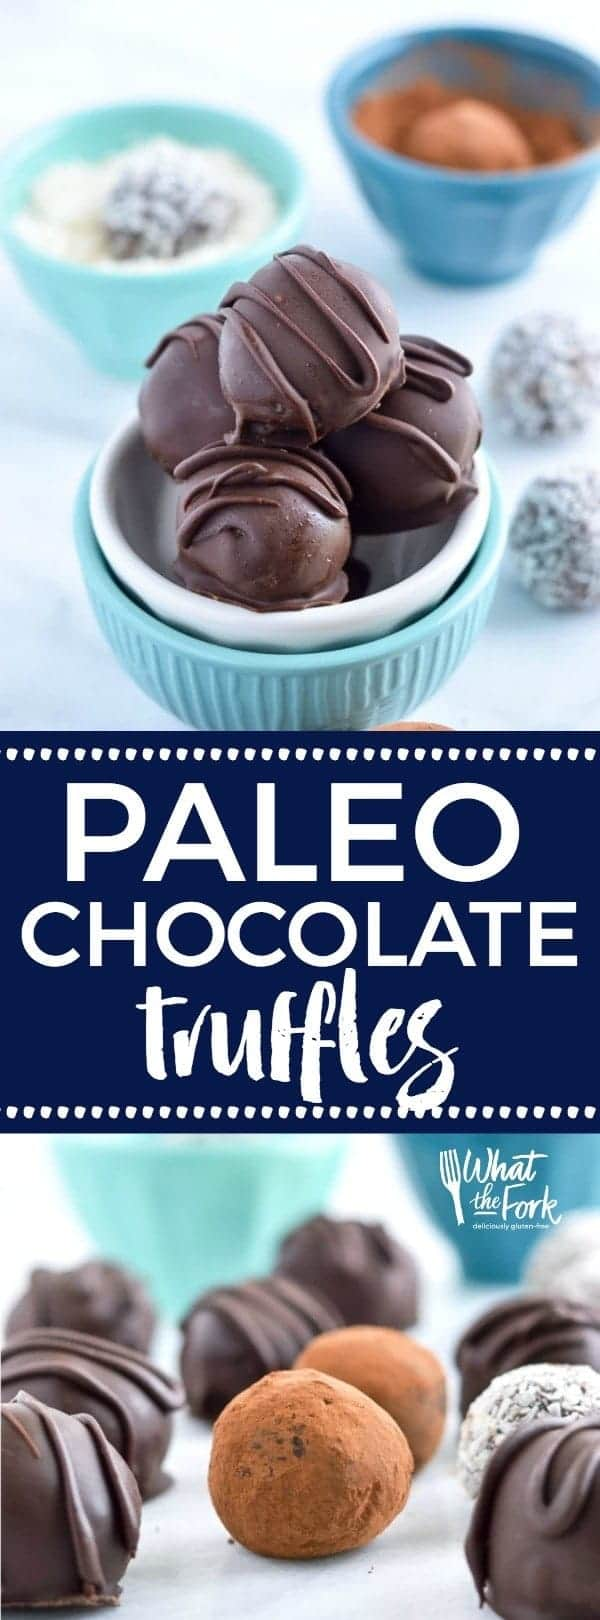 Easy Paleo Chocolate Truffles are so rich and creamy! Plus recipe included 3 ways to top them. Recipe from @whattheforkblog | whattheforkfoodblog.com | healthy recipes | healthy desserts | easy desserts | how to make truffles | dairy free truffles | naturally sweetened